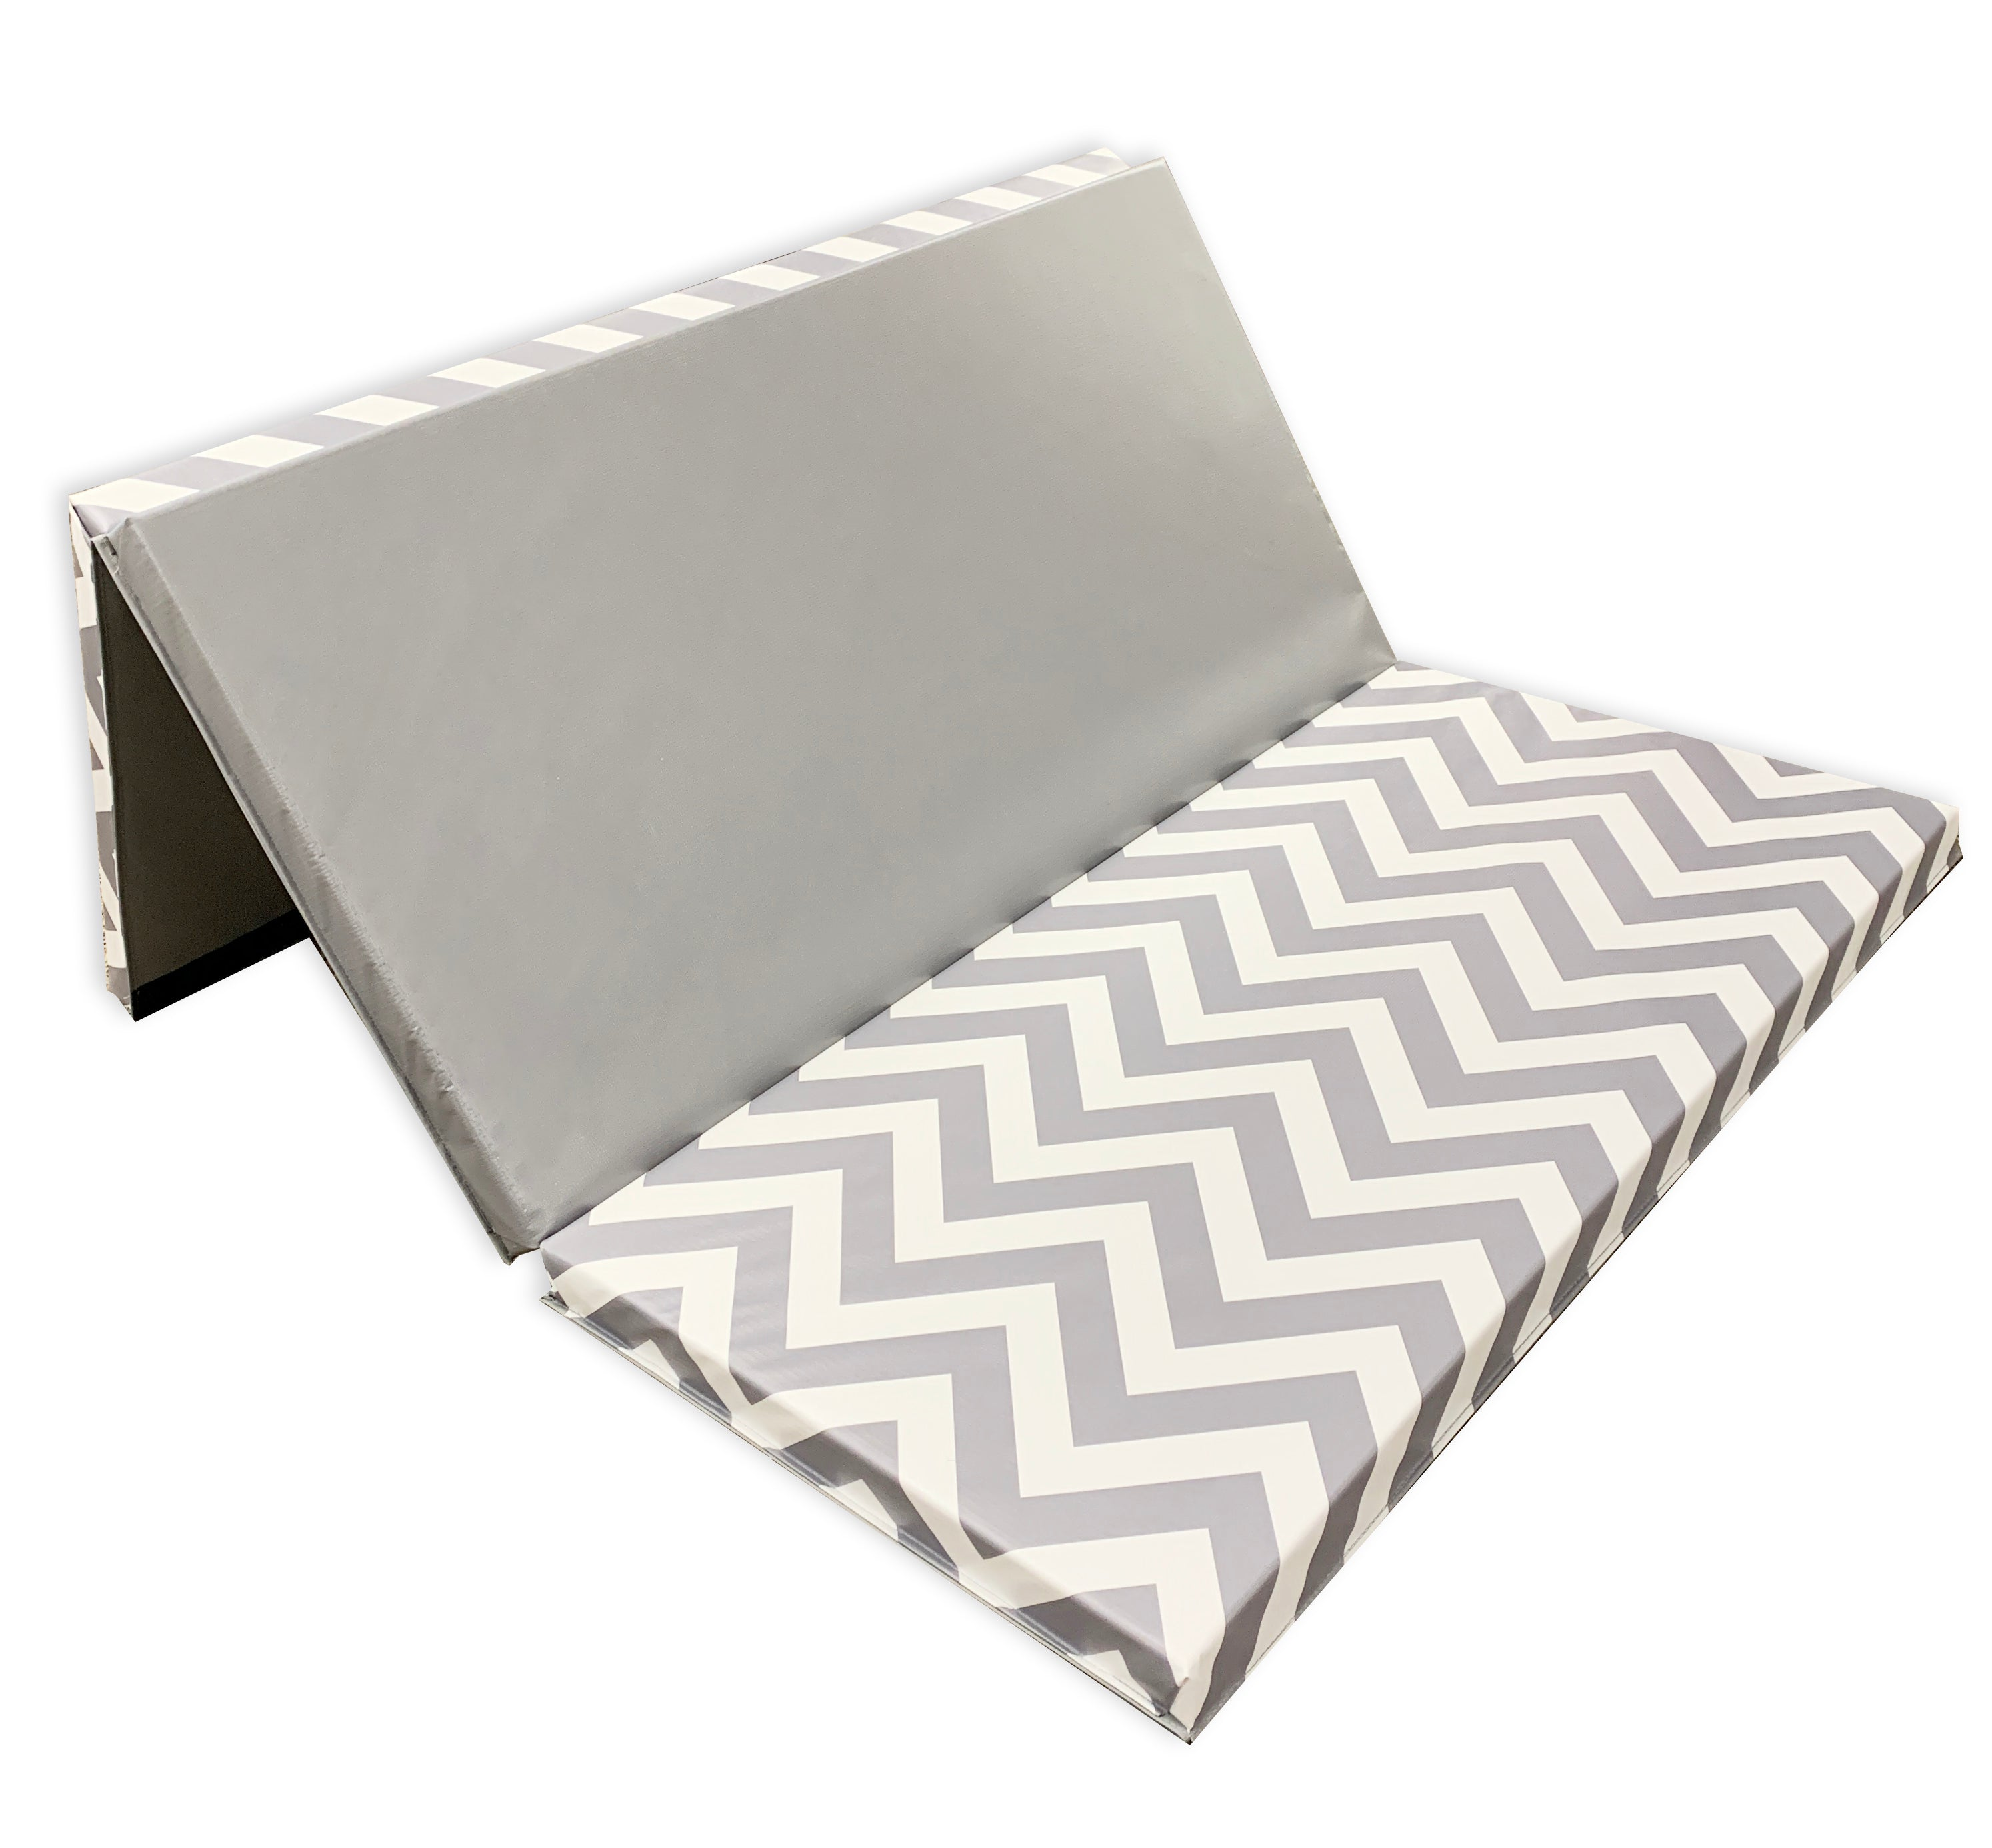 "Chevron Zigzag 4' x 6' x 2"" Intermediate Level Folding Gymnastics Mat"